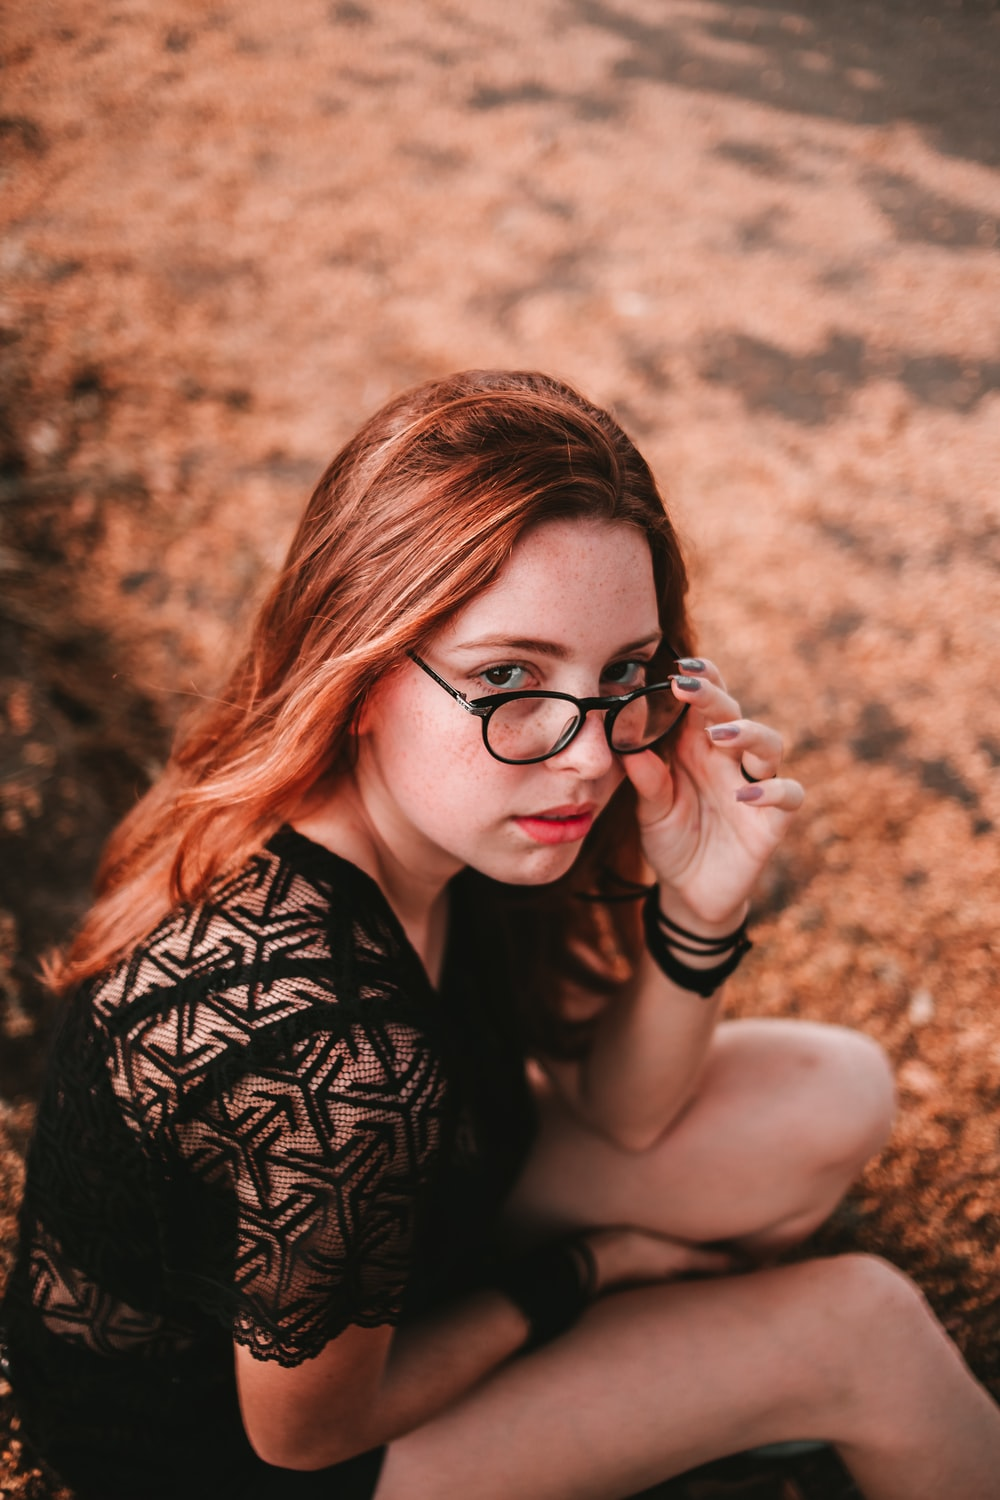 selective focus photography of sitting woman wearing black dress holding her eyeglasses